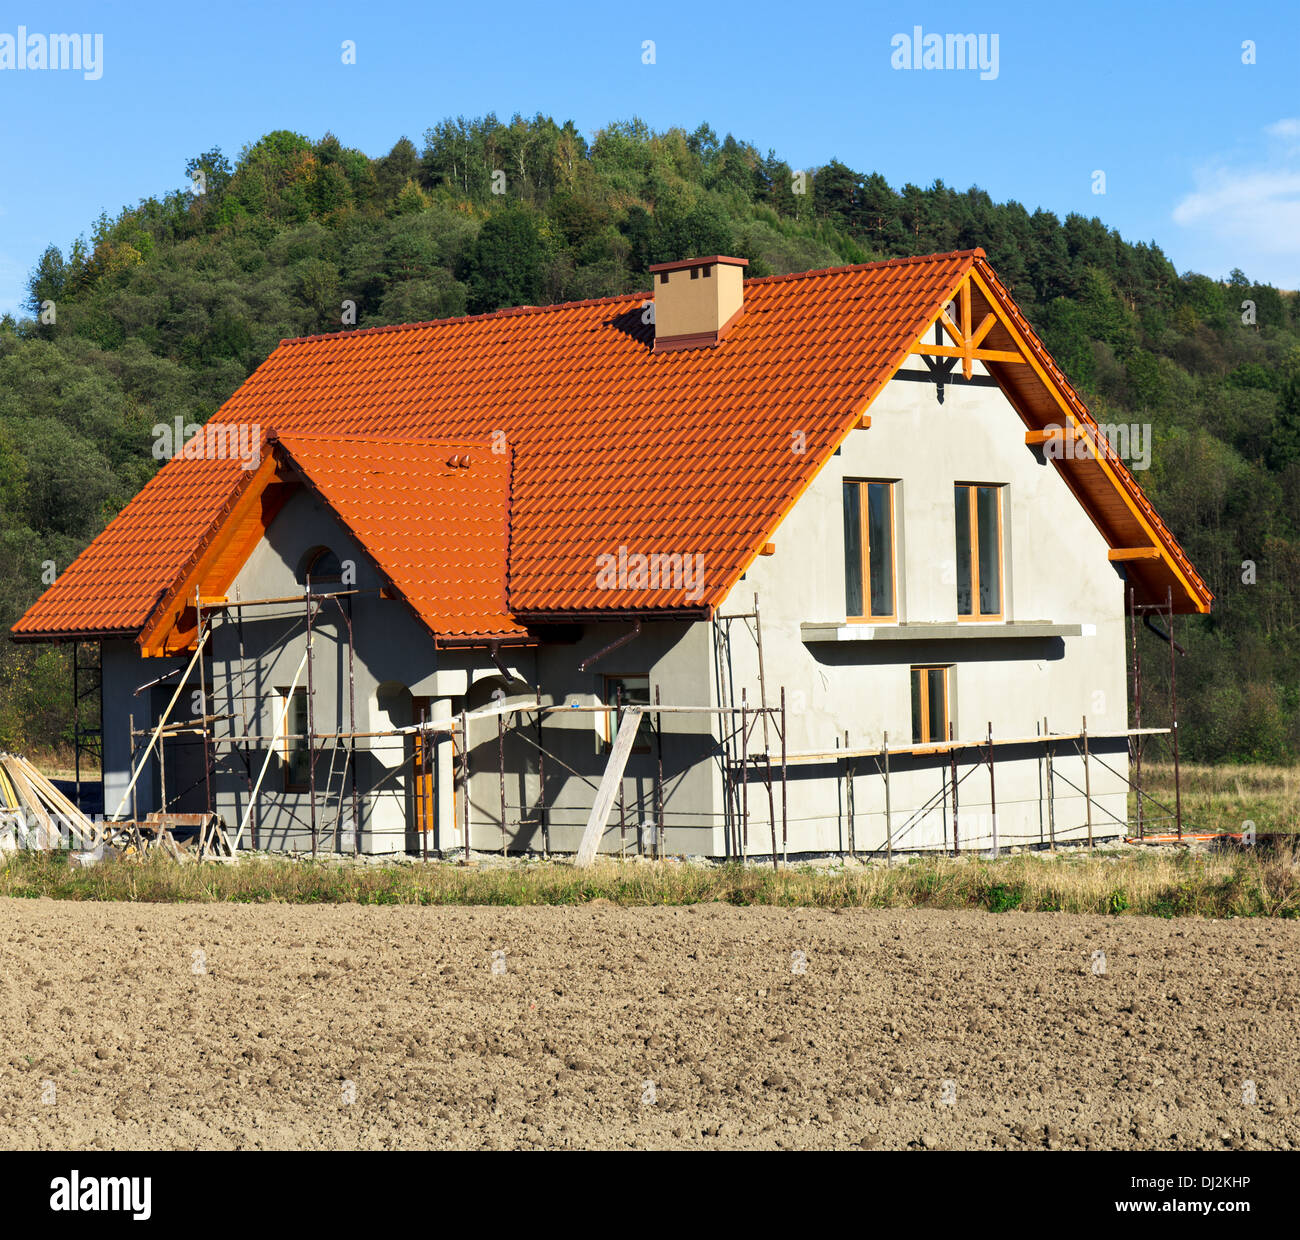 New Rural House - Stock Image